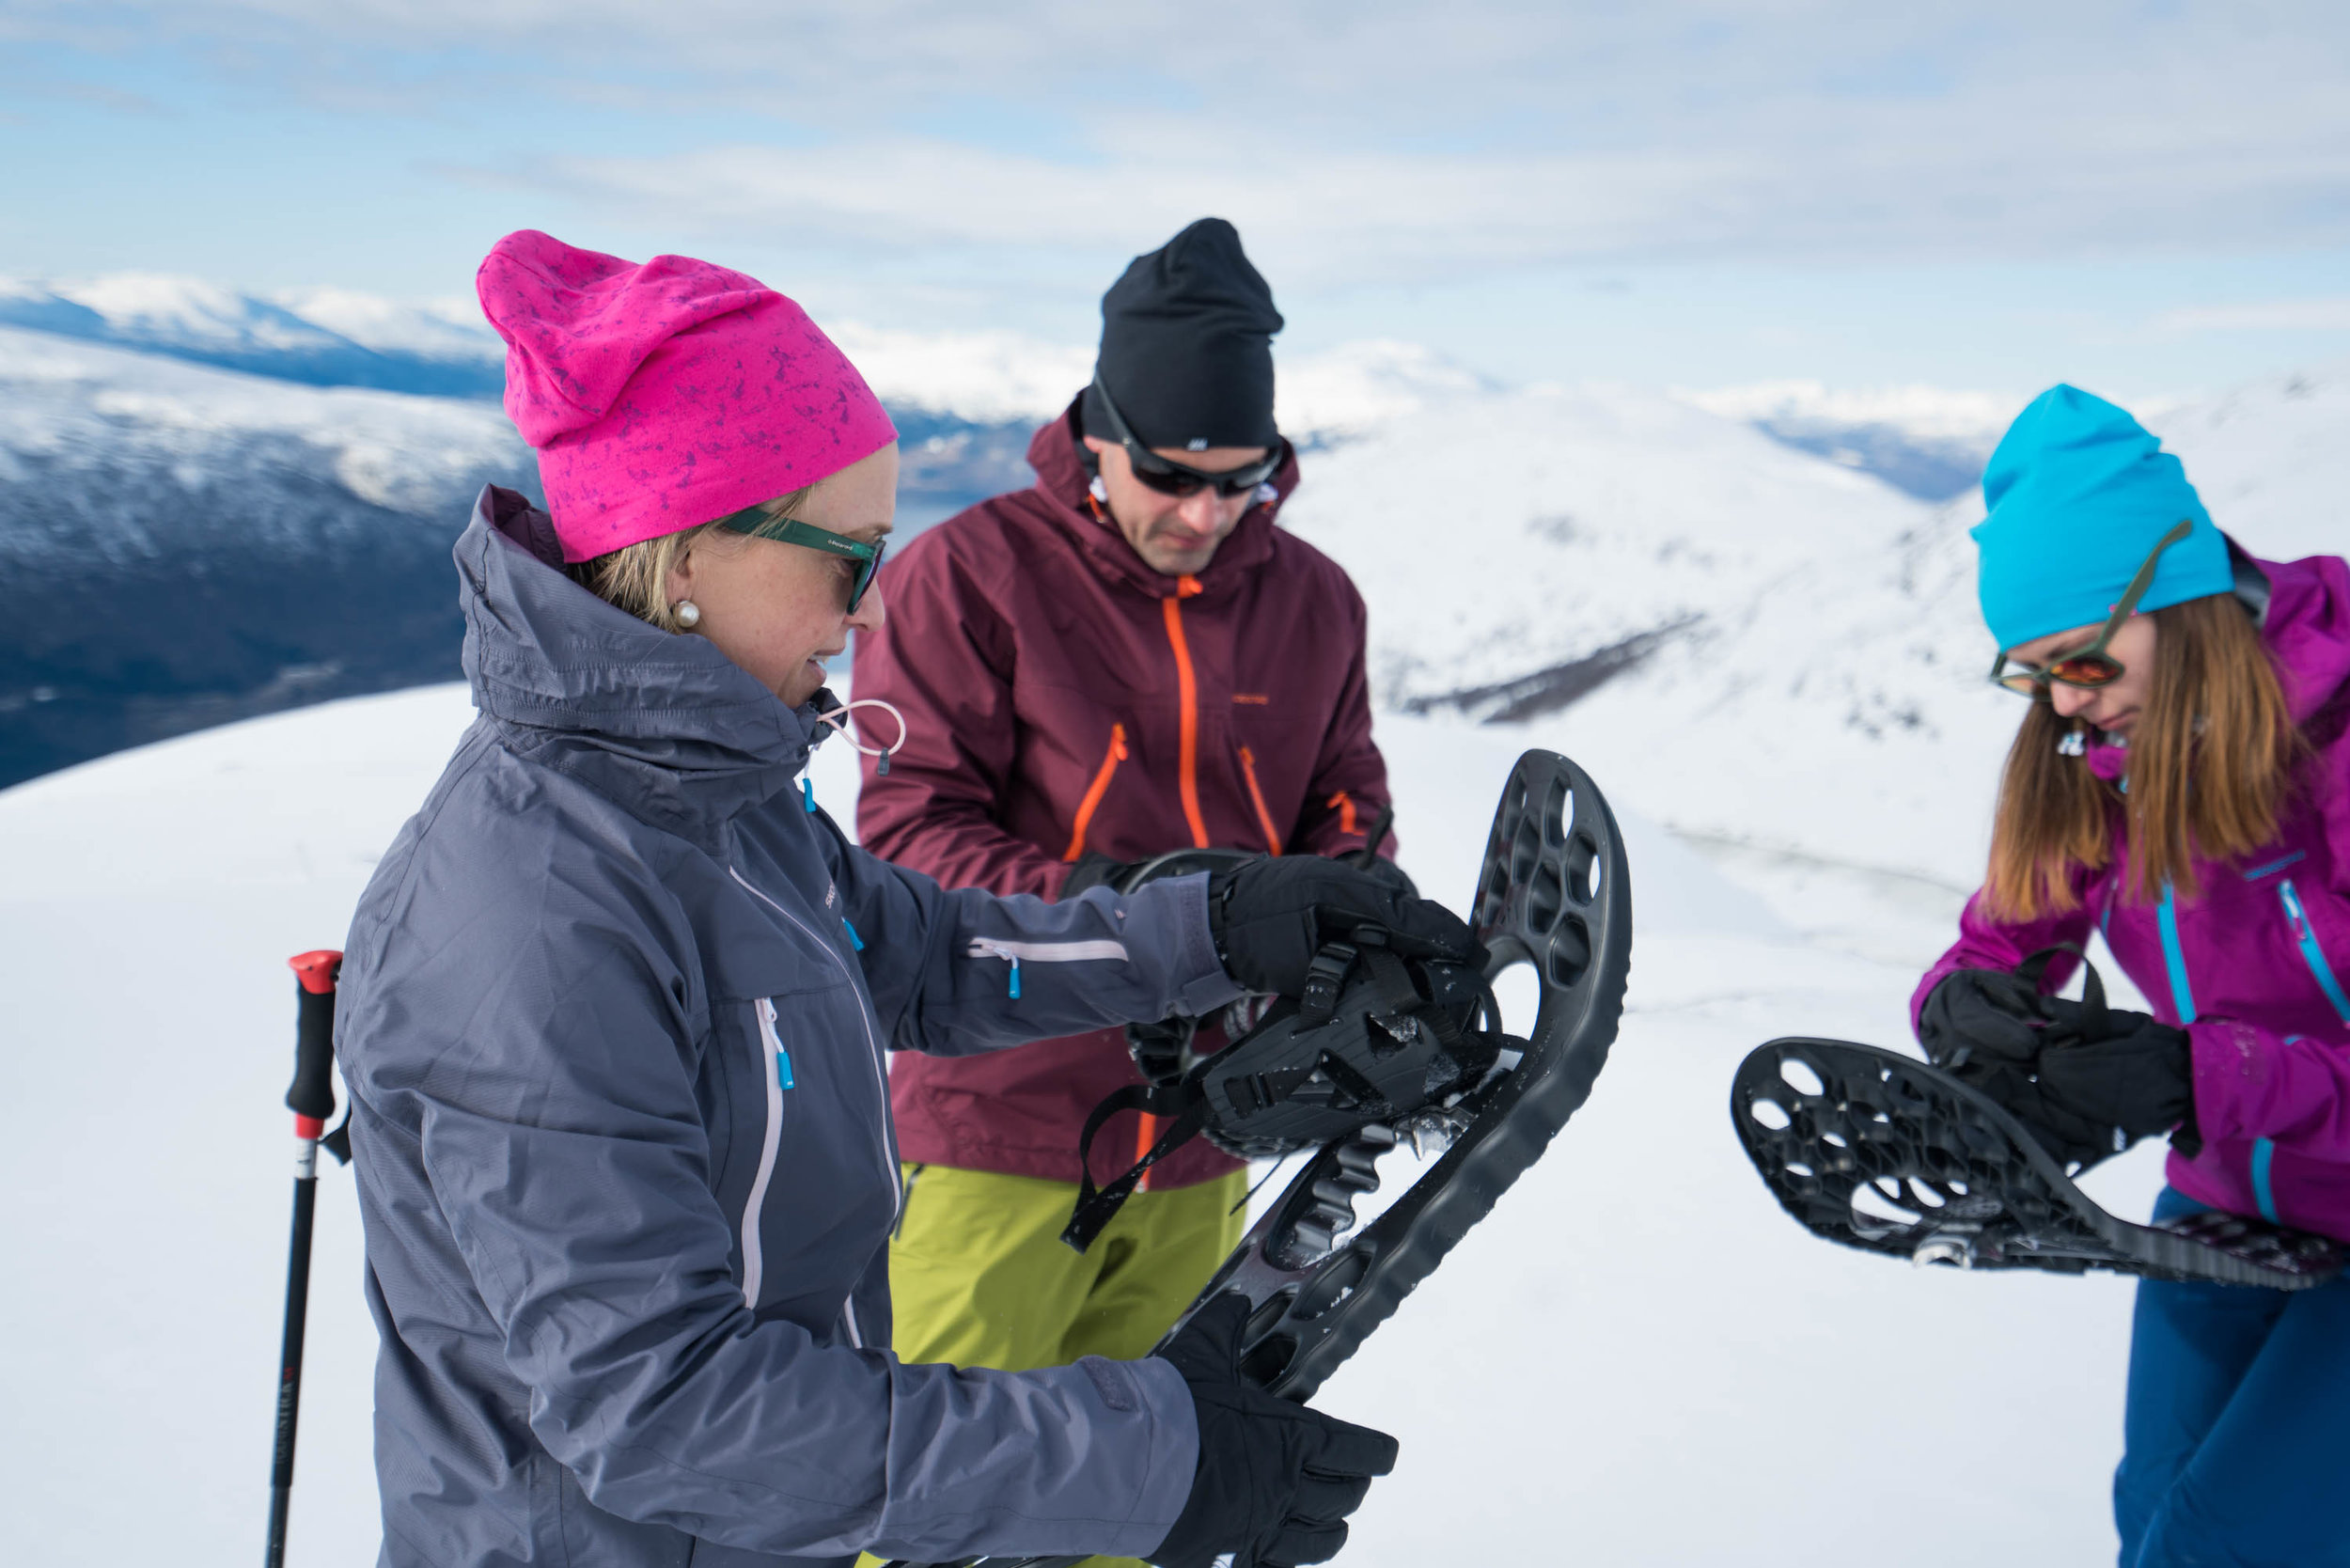 Guided snowshoeing - Explore the mountains on snowshoes - it's both easy and fun!